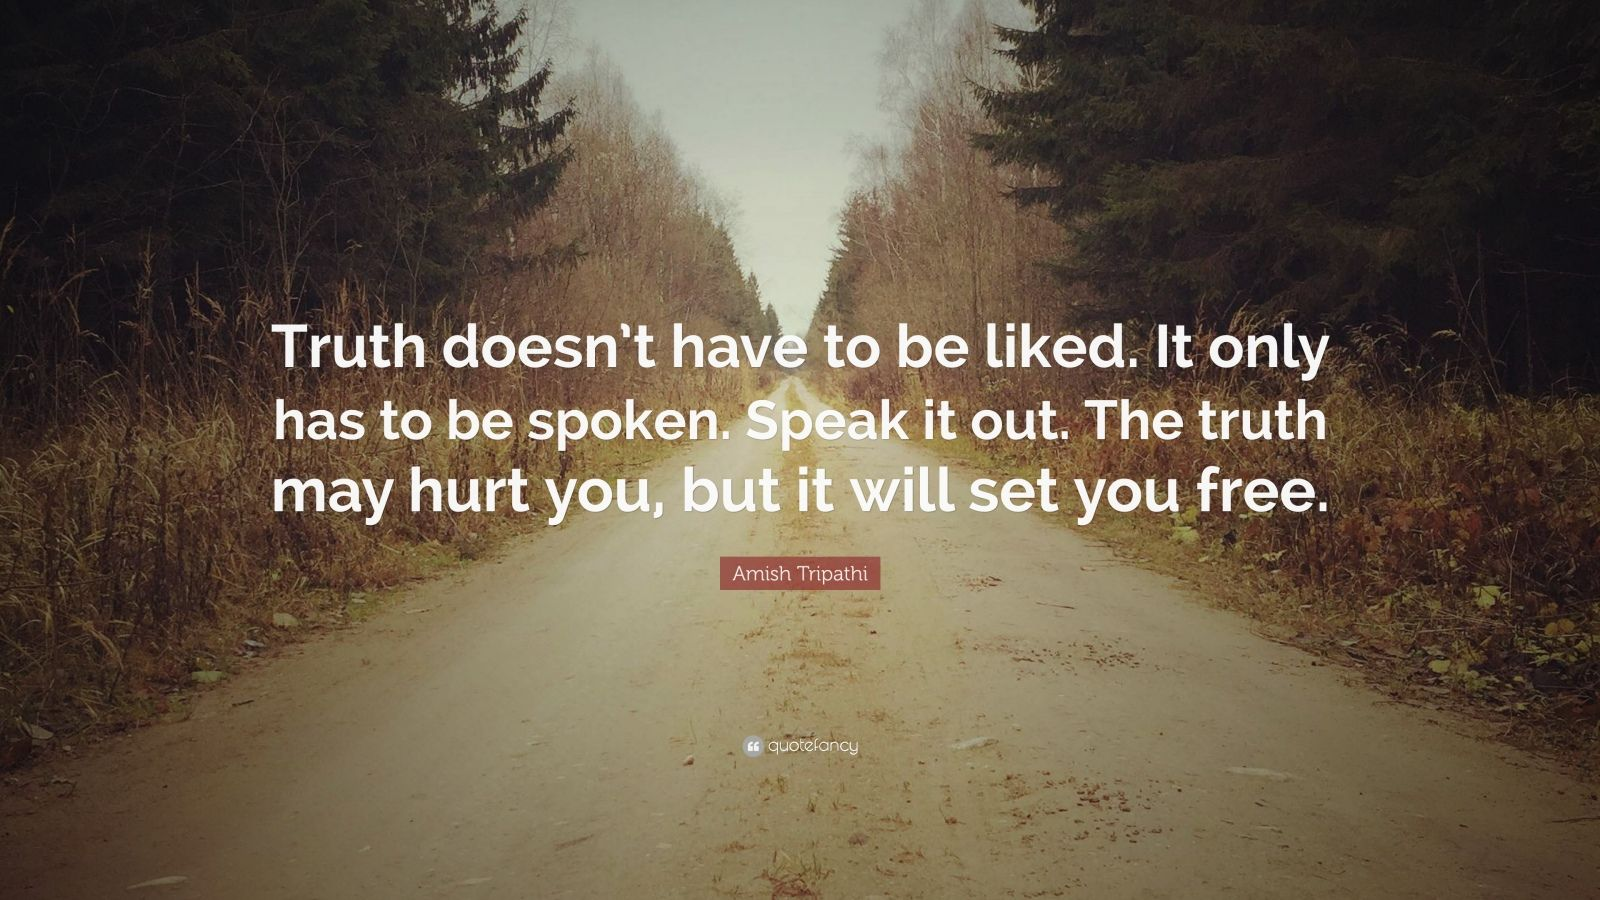 Amish Tripathi Quote Truth Doesn T Have To Be Liked It Only Has To Be Spoken Speak It Out